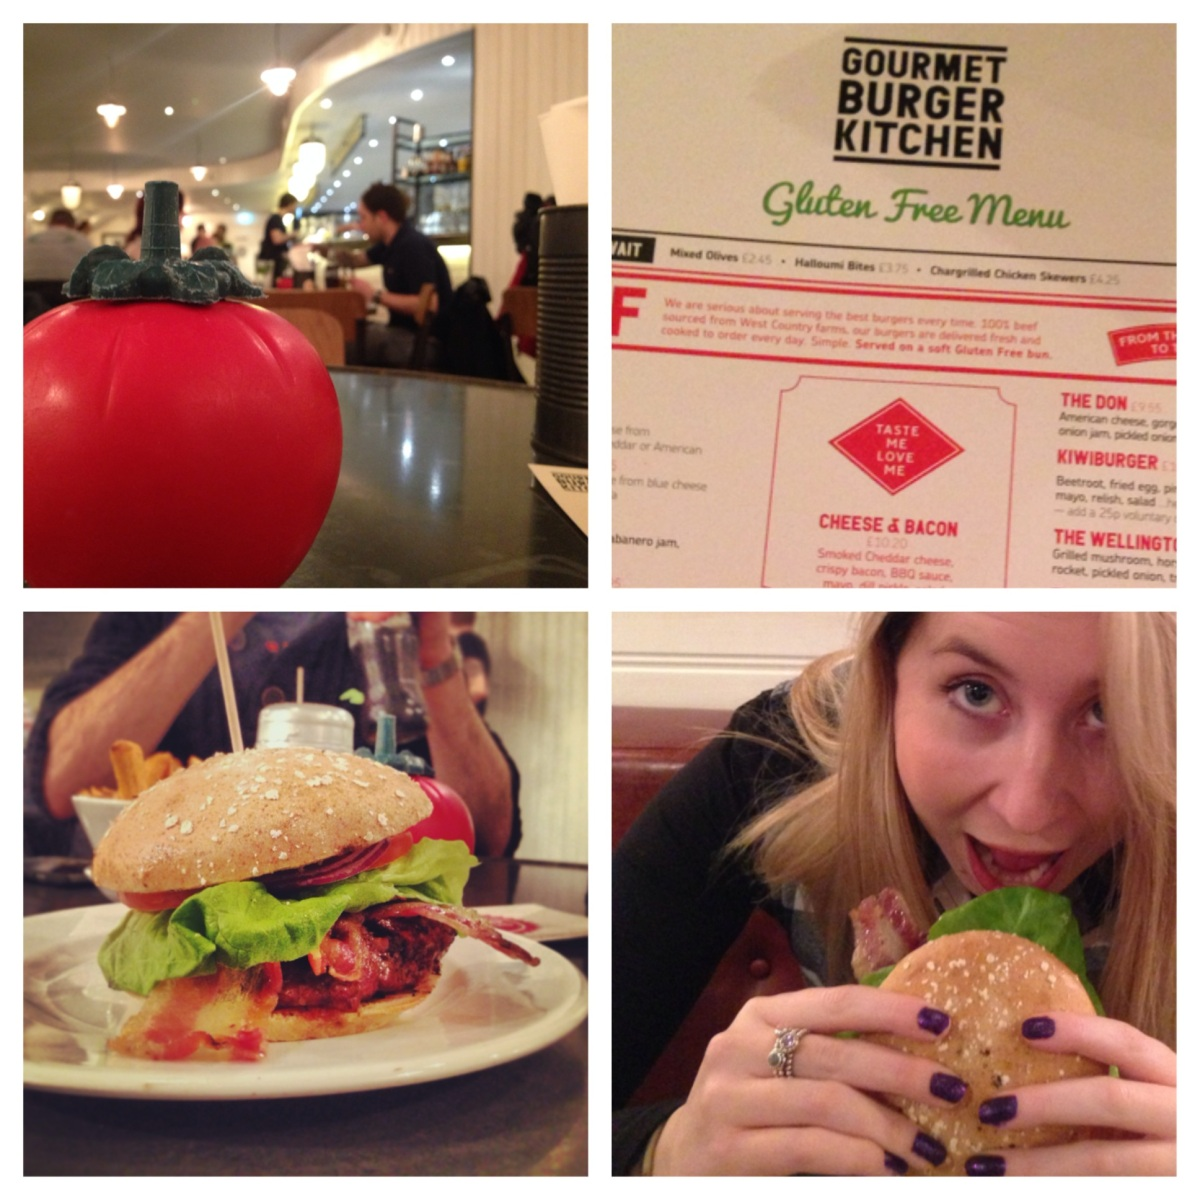 Gluten Free Burgers at Gourmet Burger Kitchen